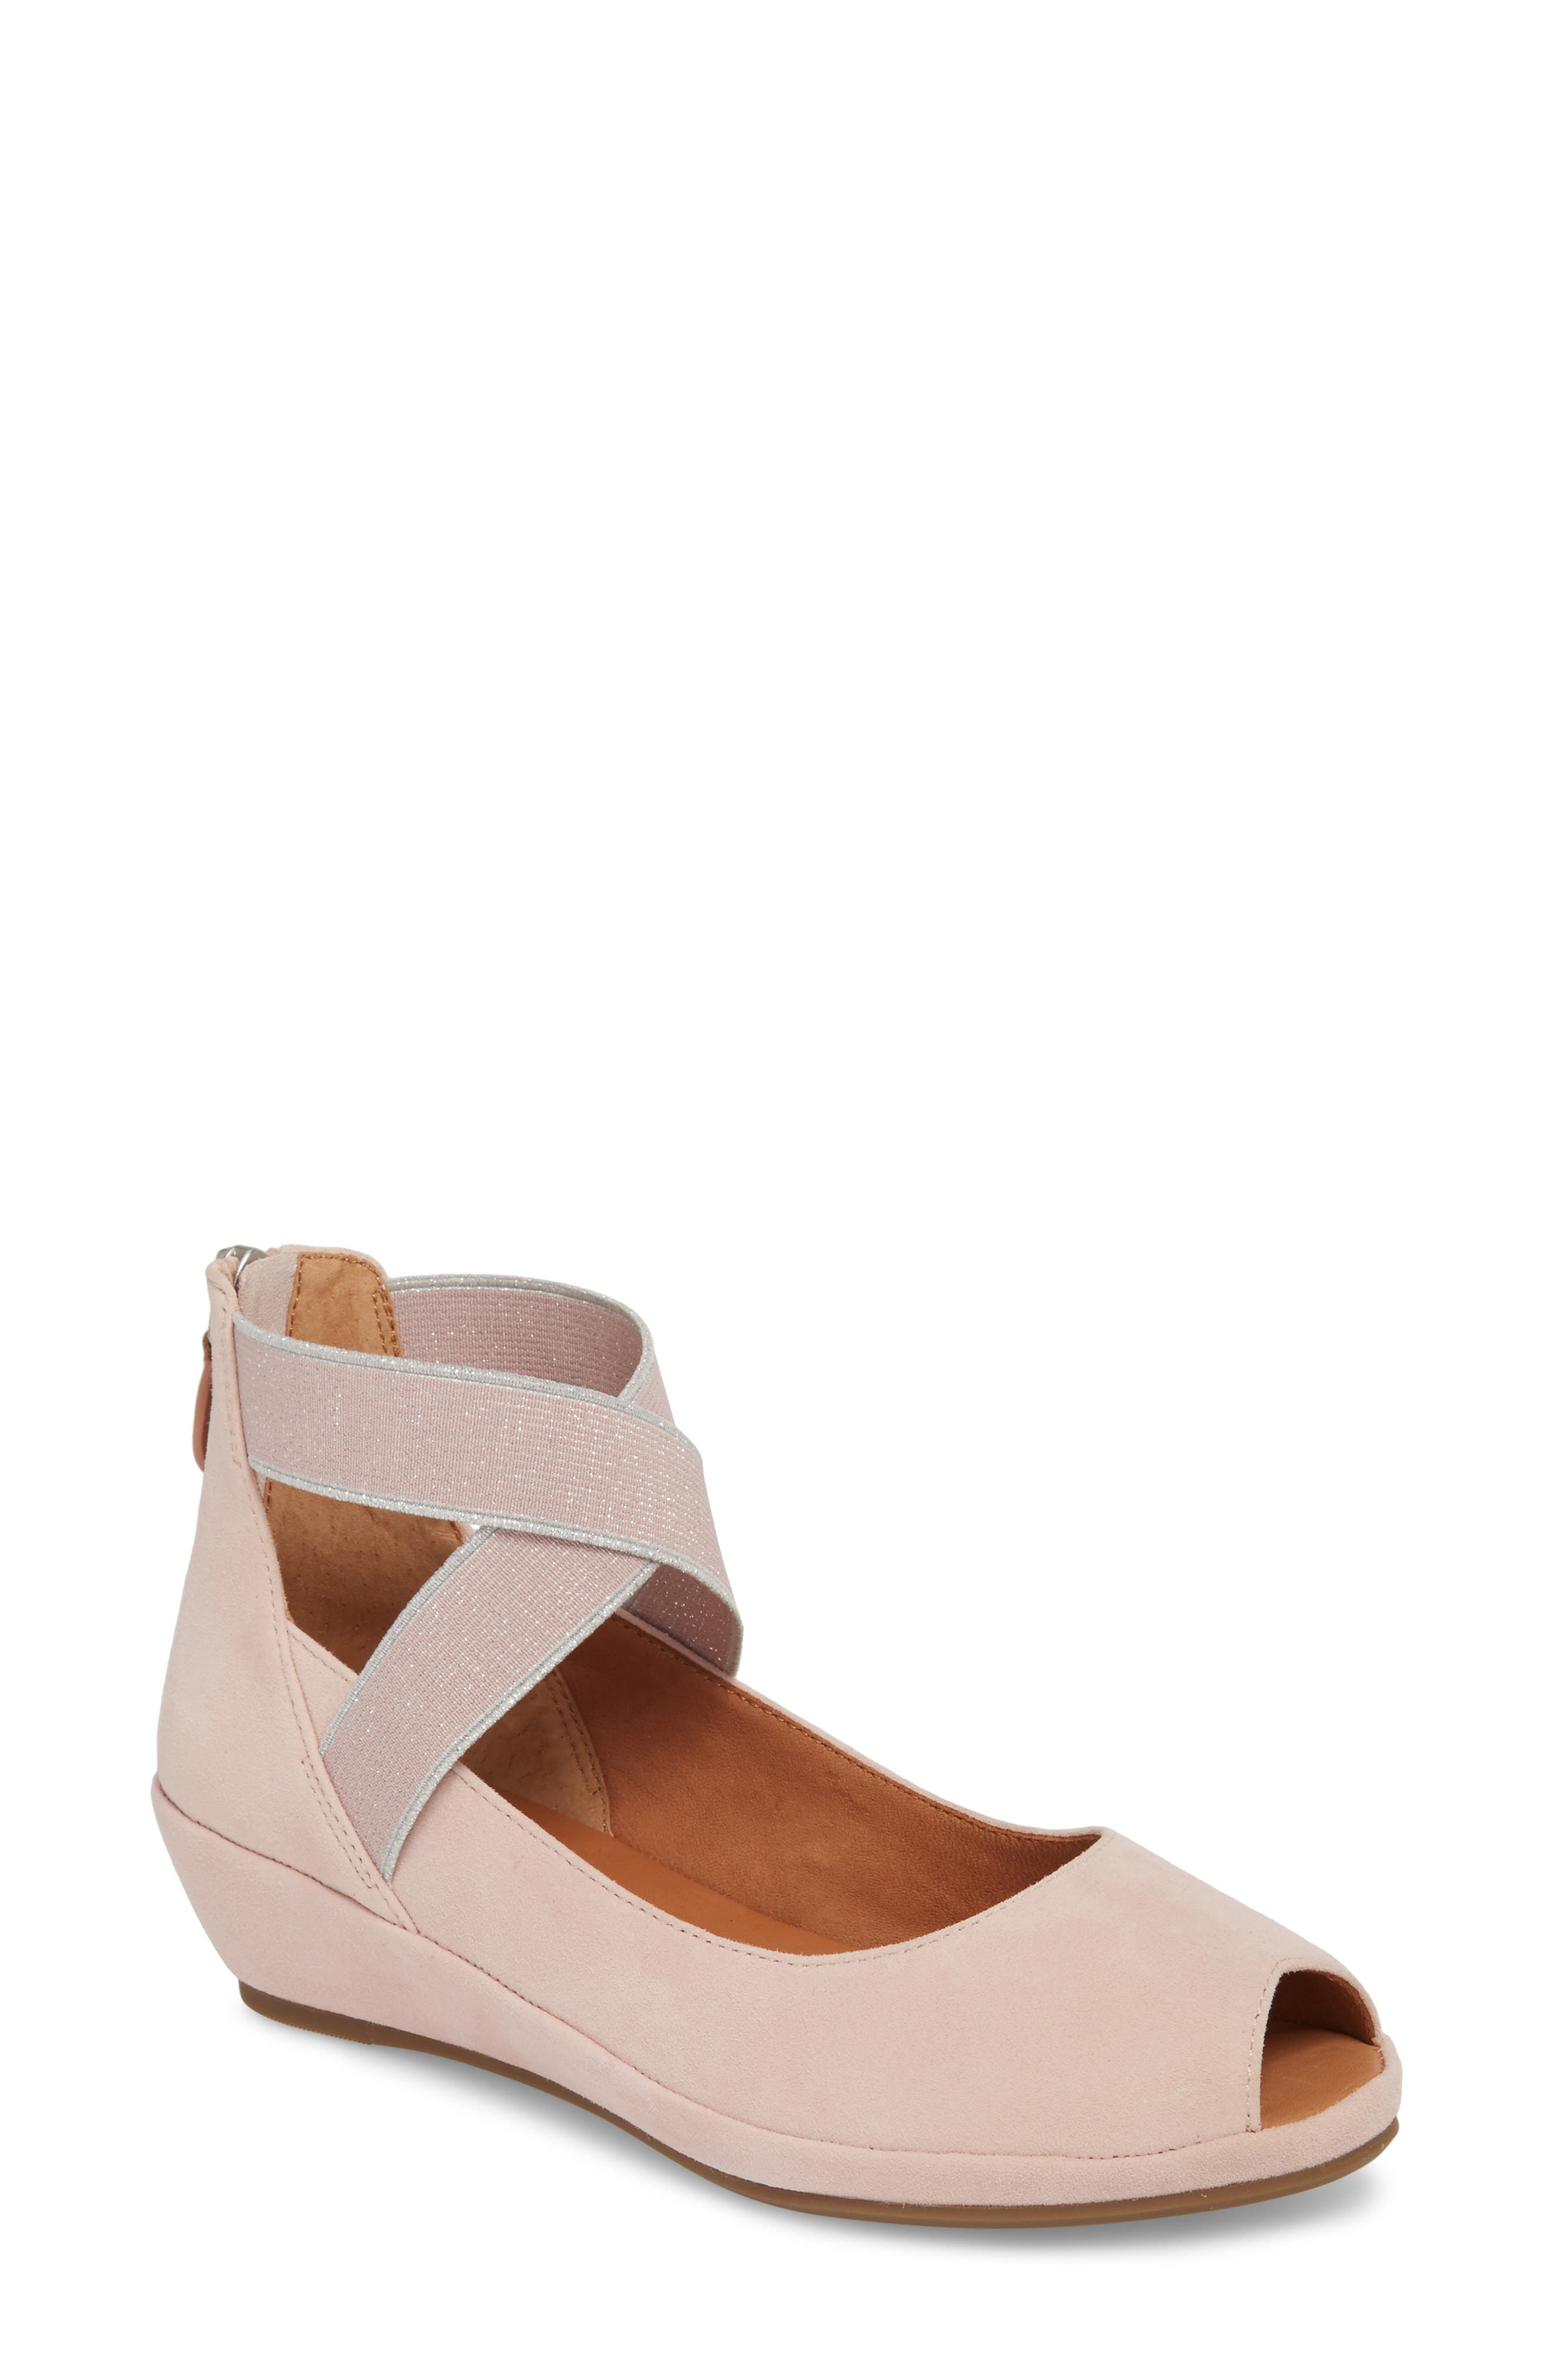 by Kenneth Cole Lisa Wedge Sandal,                             Main thumbnail 1, color,                             PEONY SUEDE